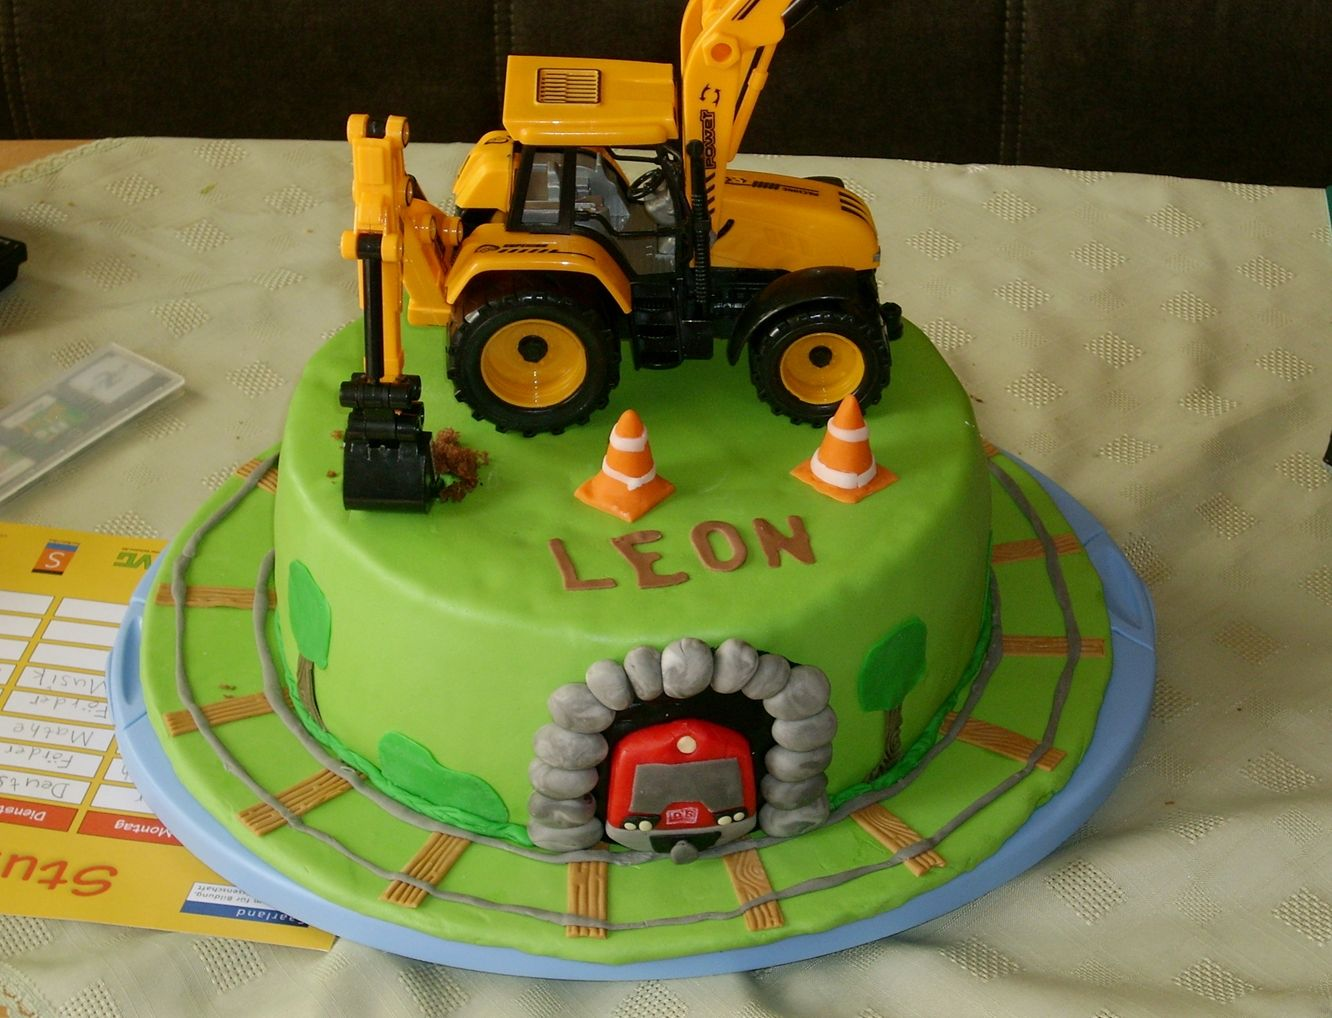 train cake with digger zug torte mit bagger meine torten pinterest meine torte. Black Bedroom Furniture Sets. Home Design Ideas